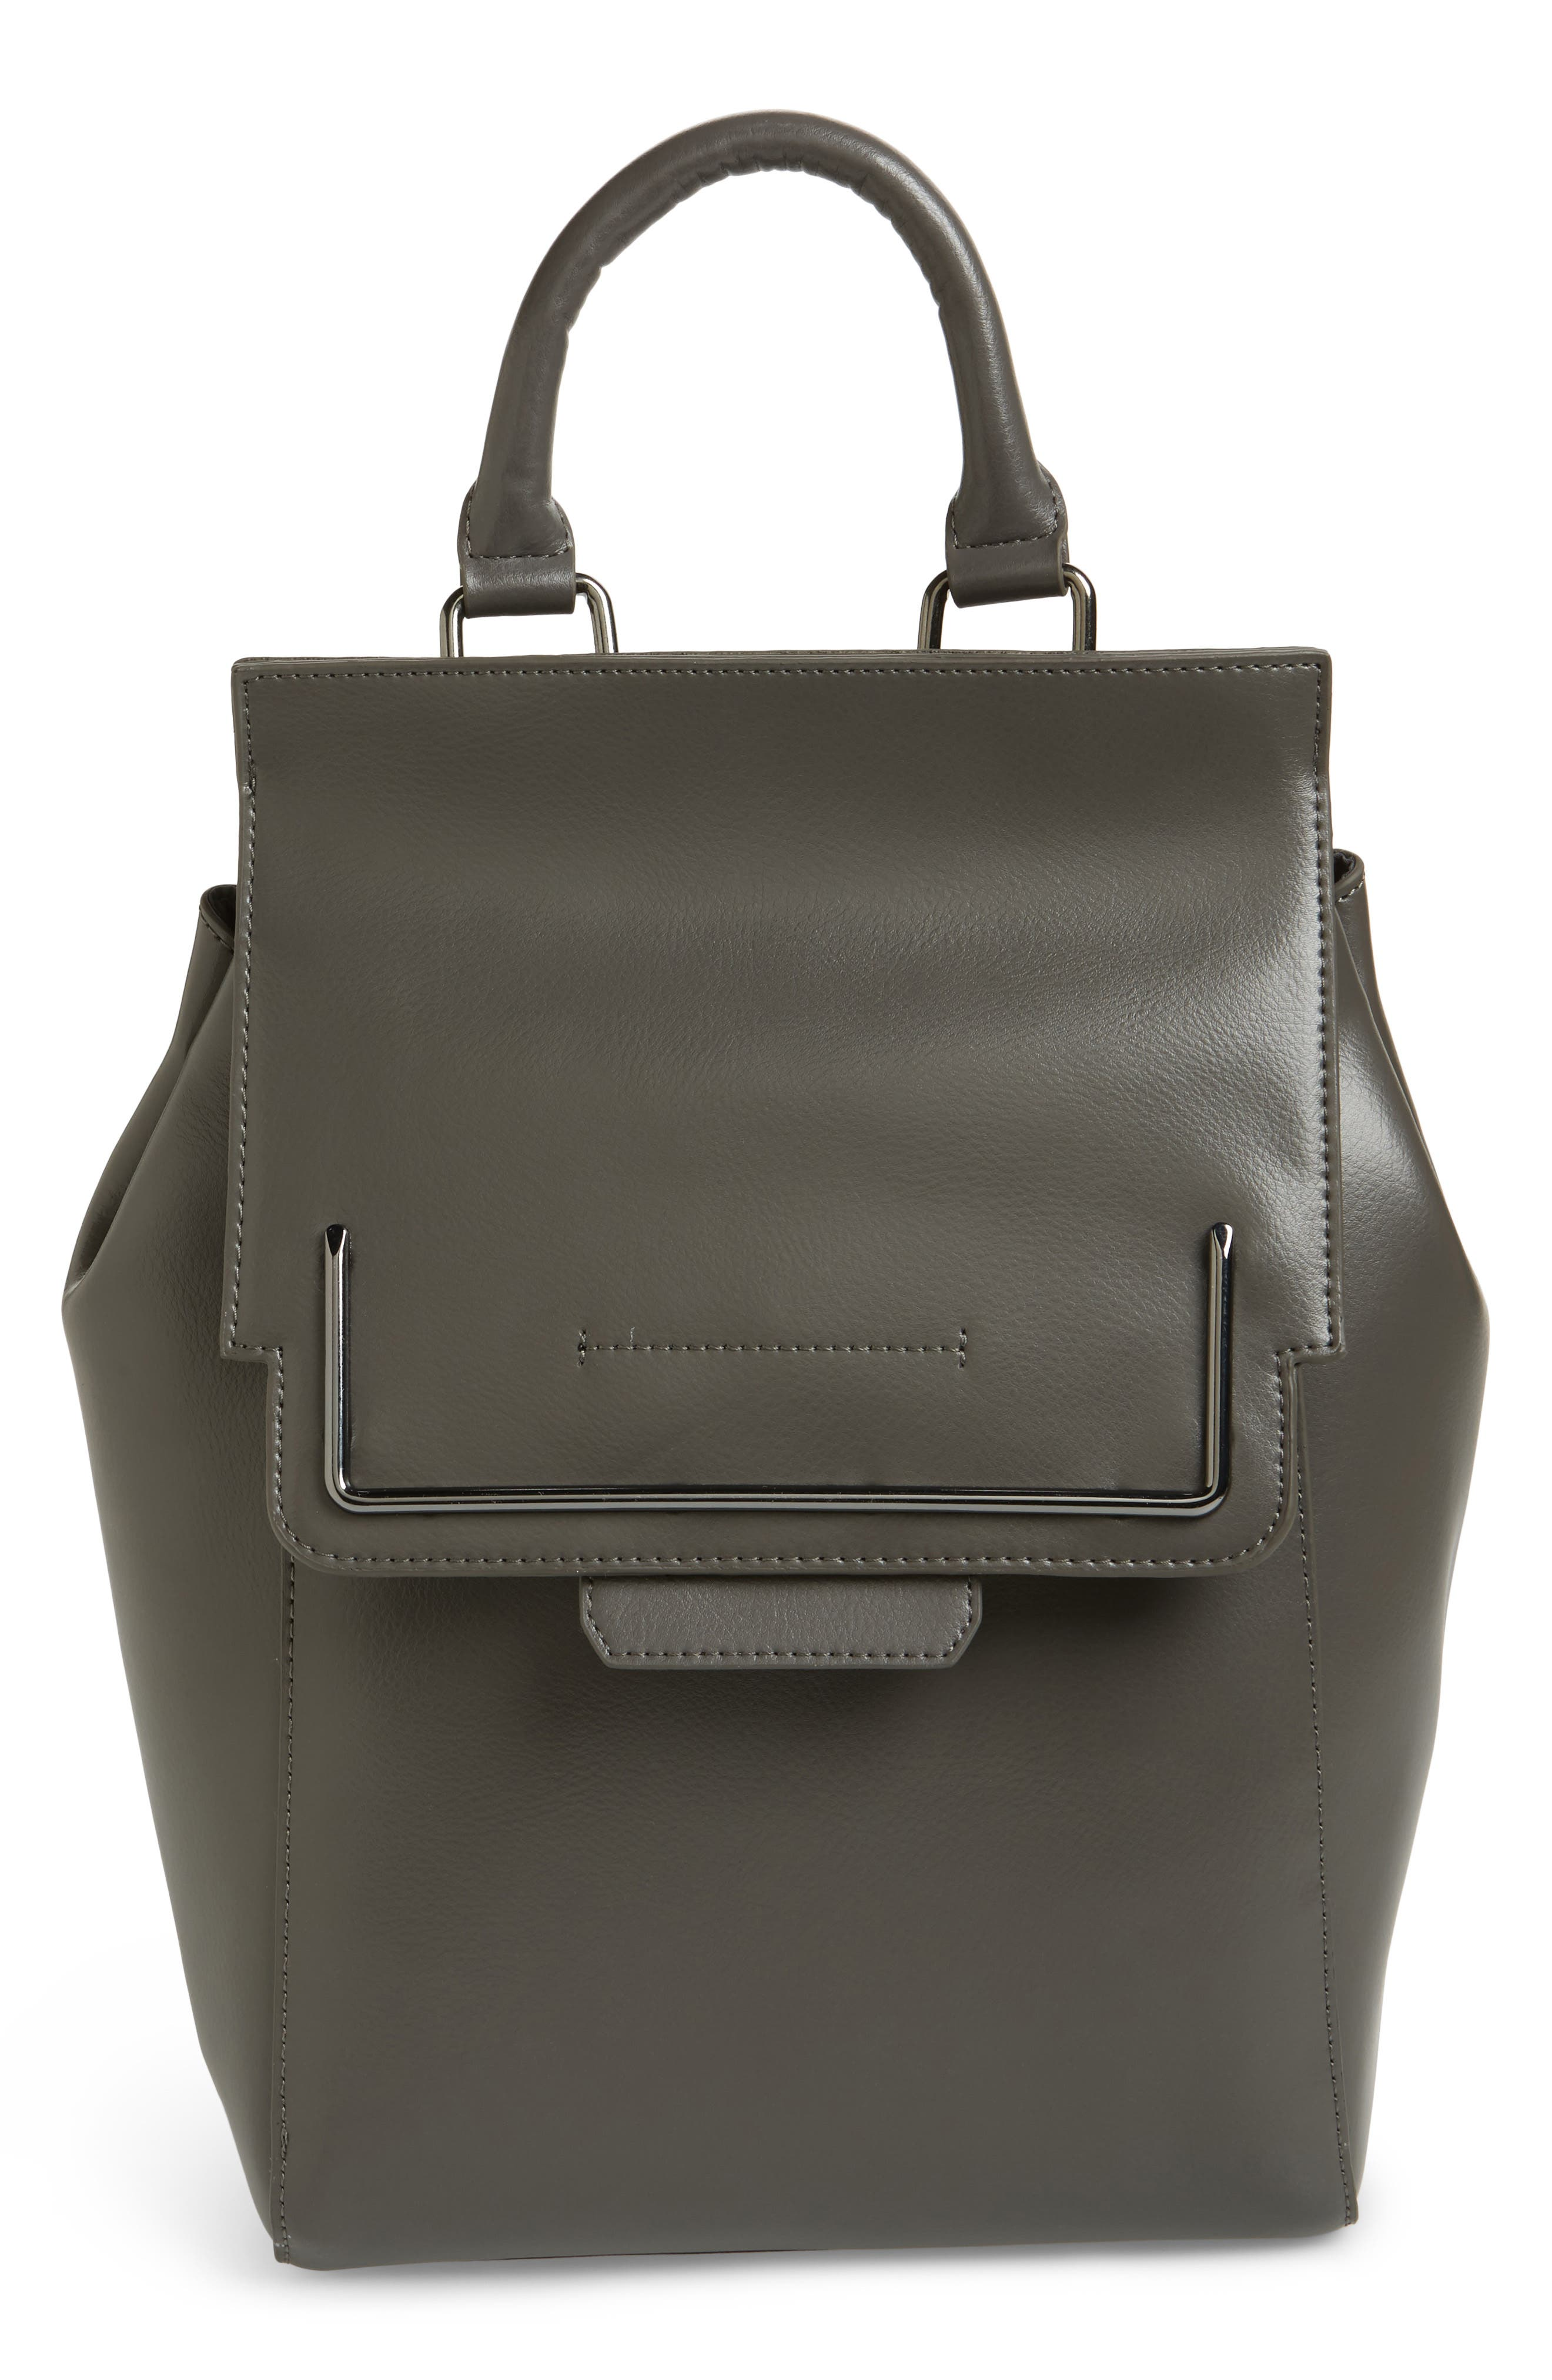 Danielle Nicole DYLAN LEATHER BACKPACK - GREY